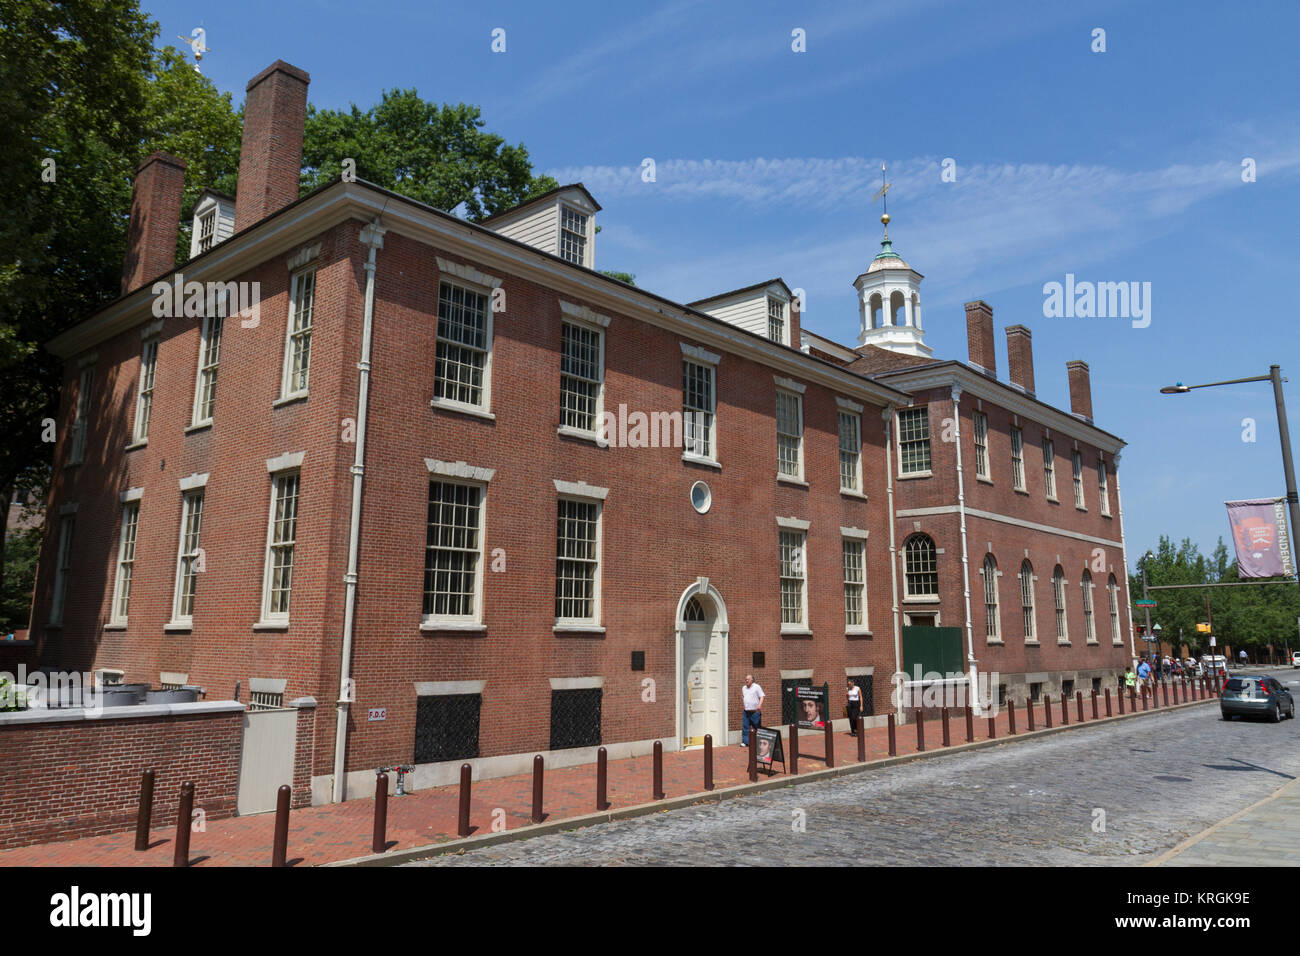 Philosophical Hall (left) and Old City Hall (right), Philadelphia, Pennsylvania, United States. - Stock Image